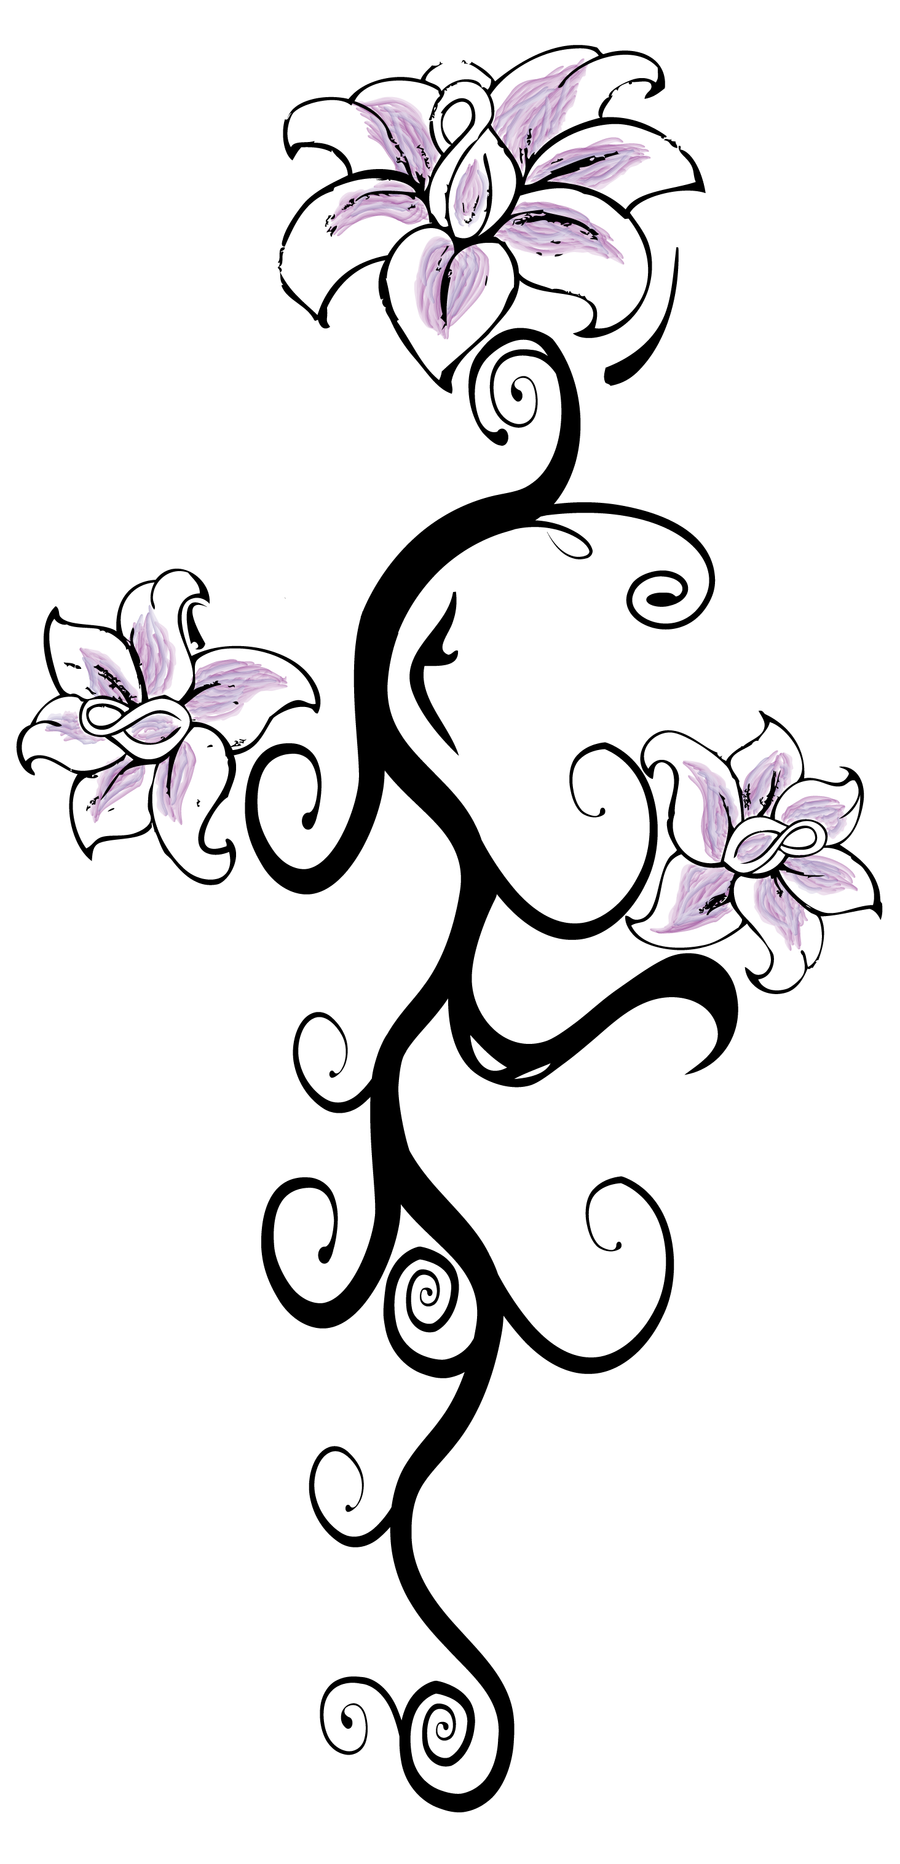 Flower back tattoo by ladysilver2267 on deviantart flower back tattoo by ladysilver2267 flower back tattoo by ladysilver2267 izmirmasajfo